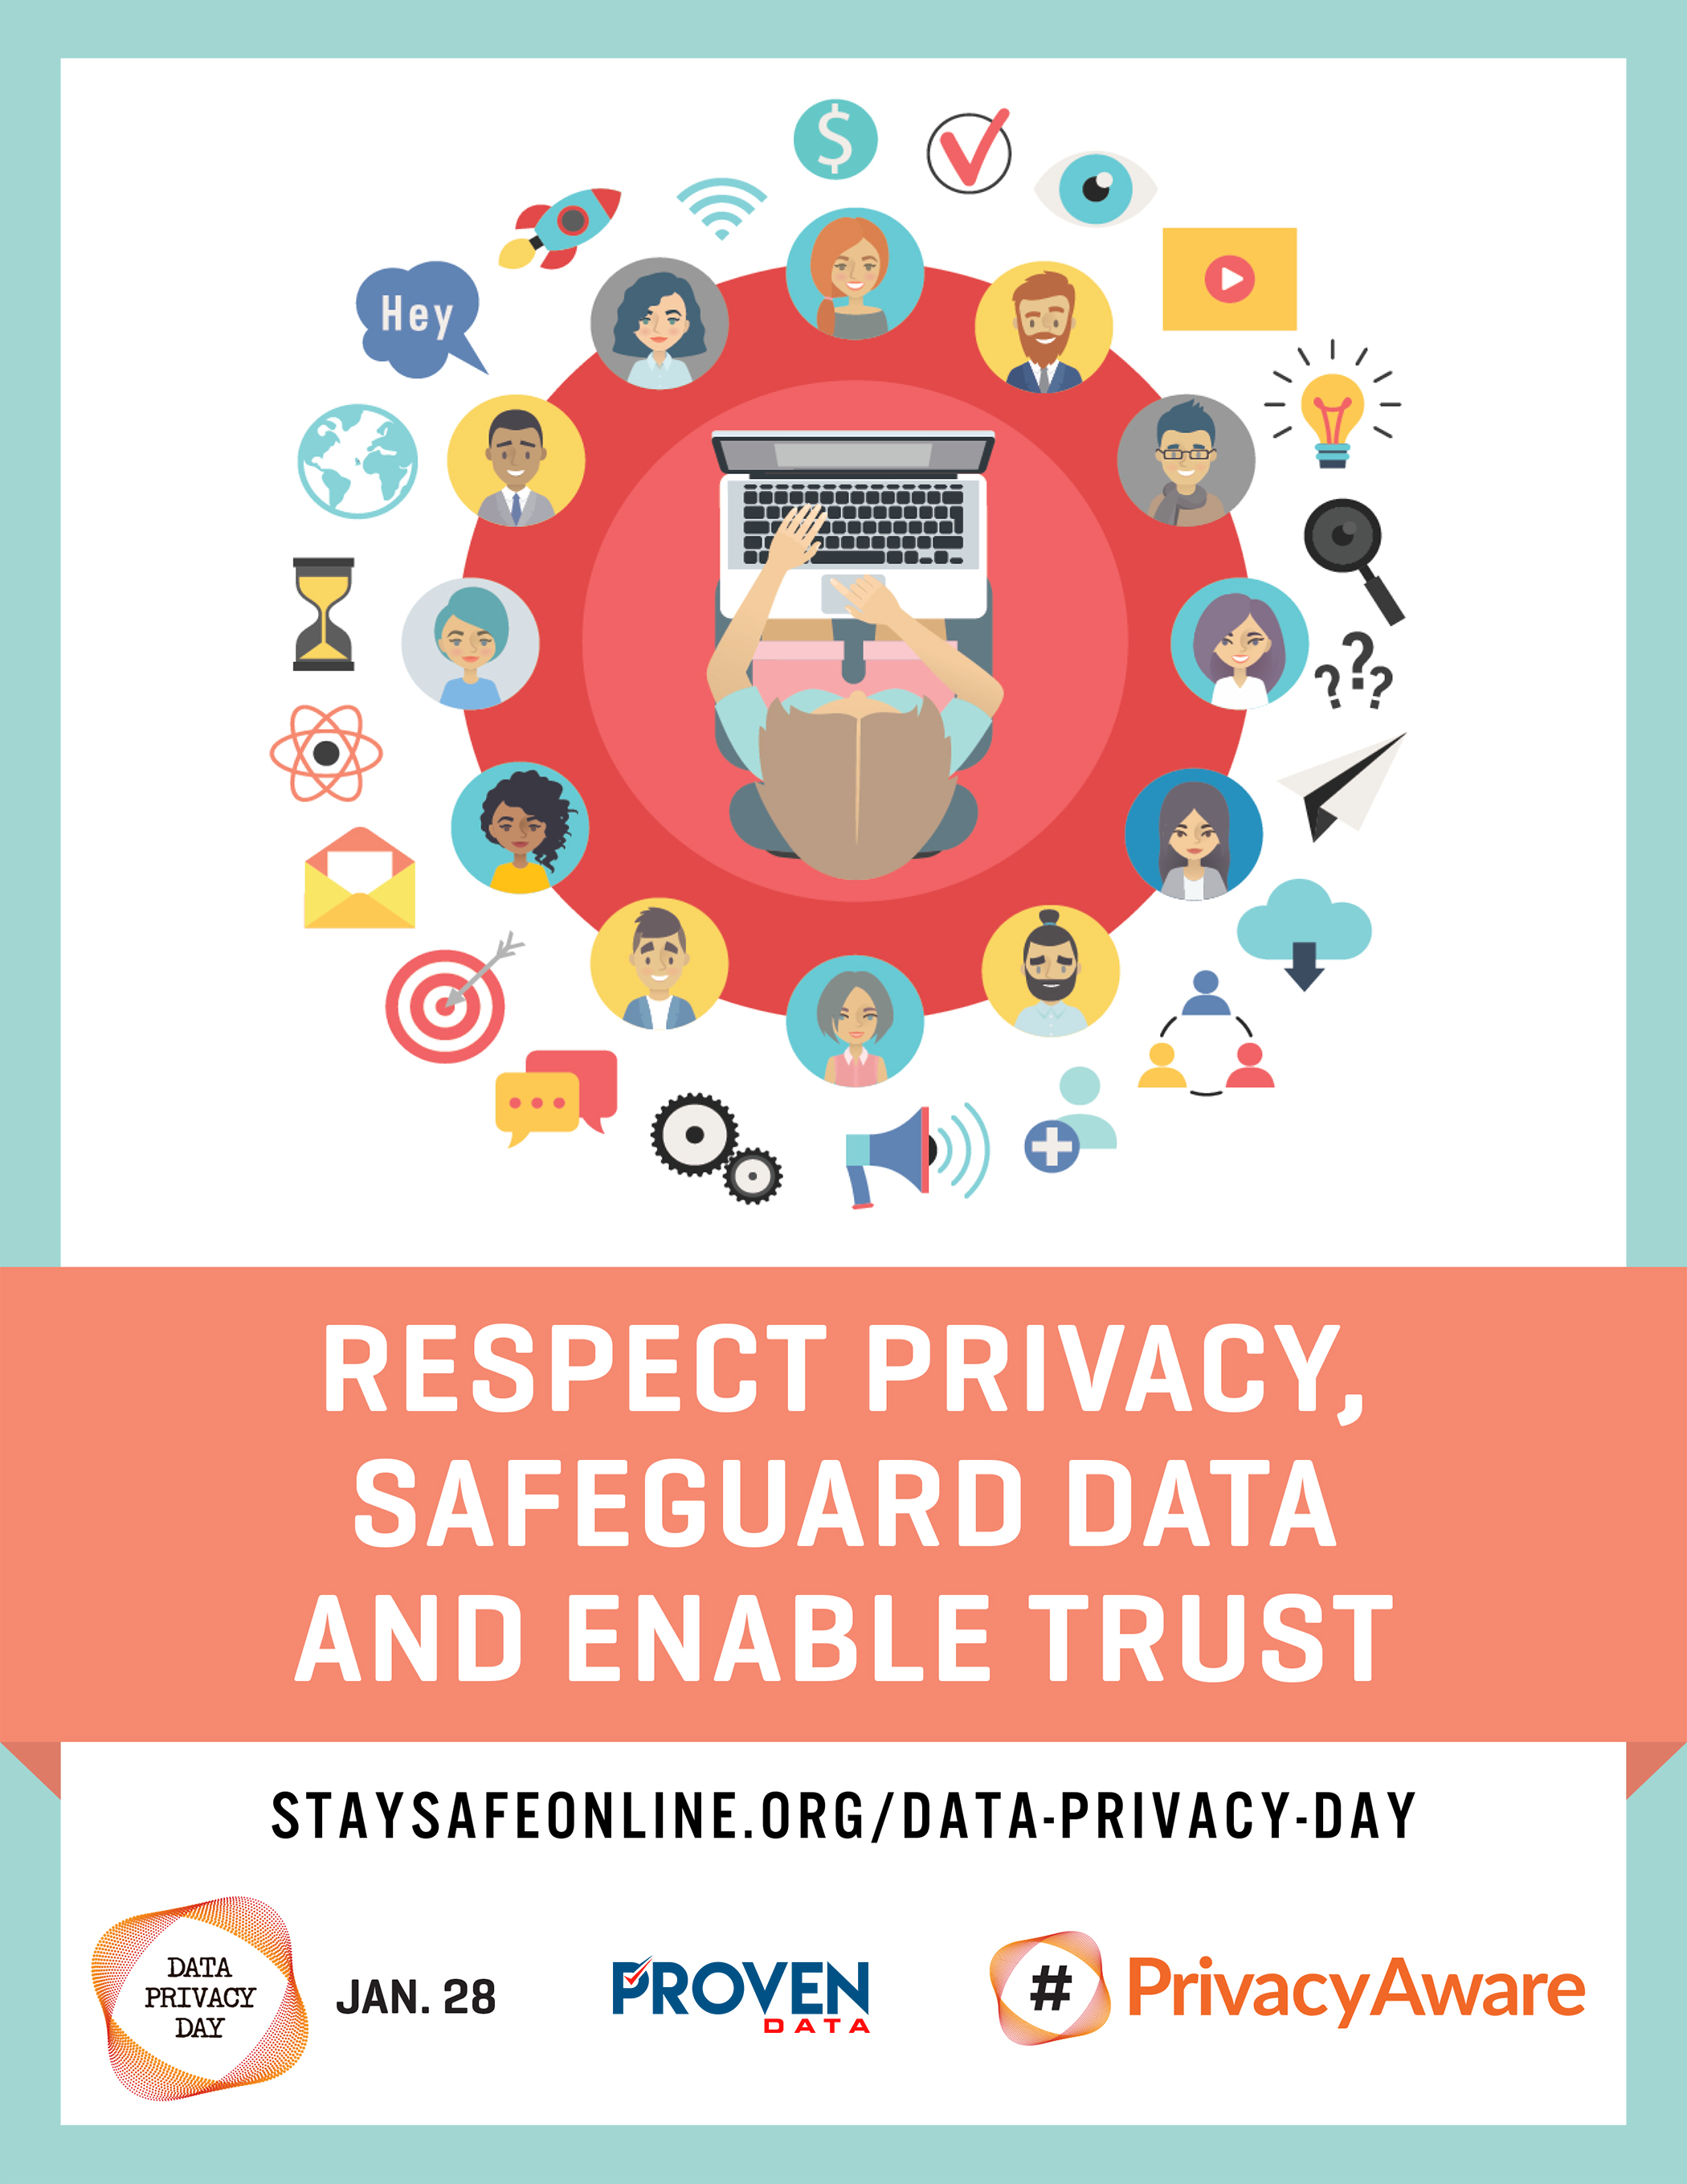 Data Privacy Day, Proven Data